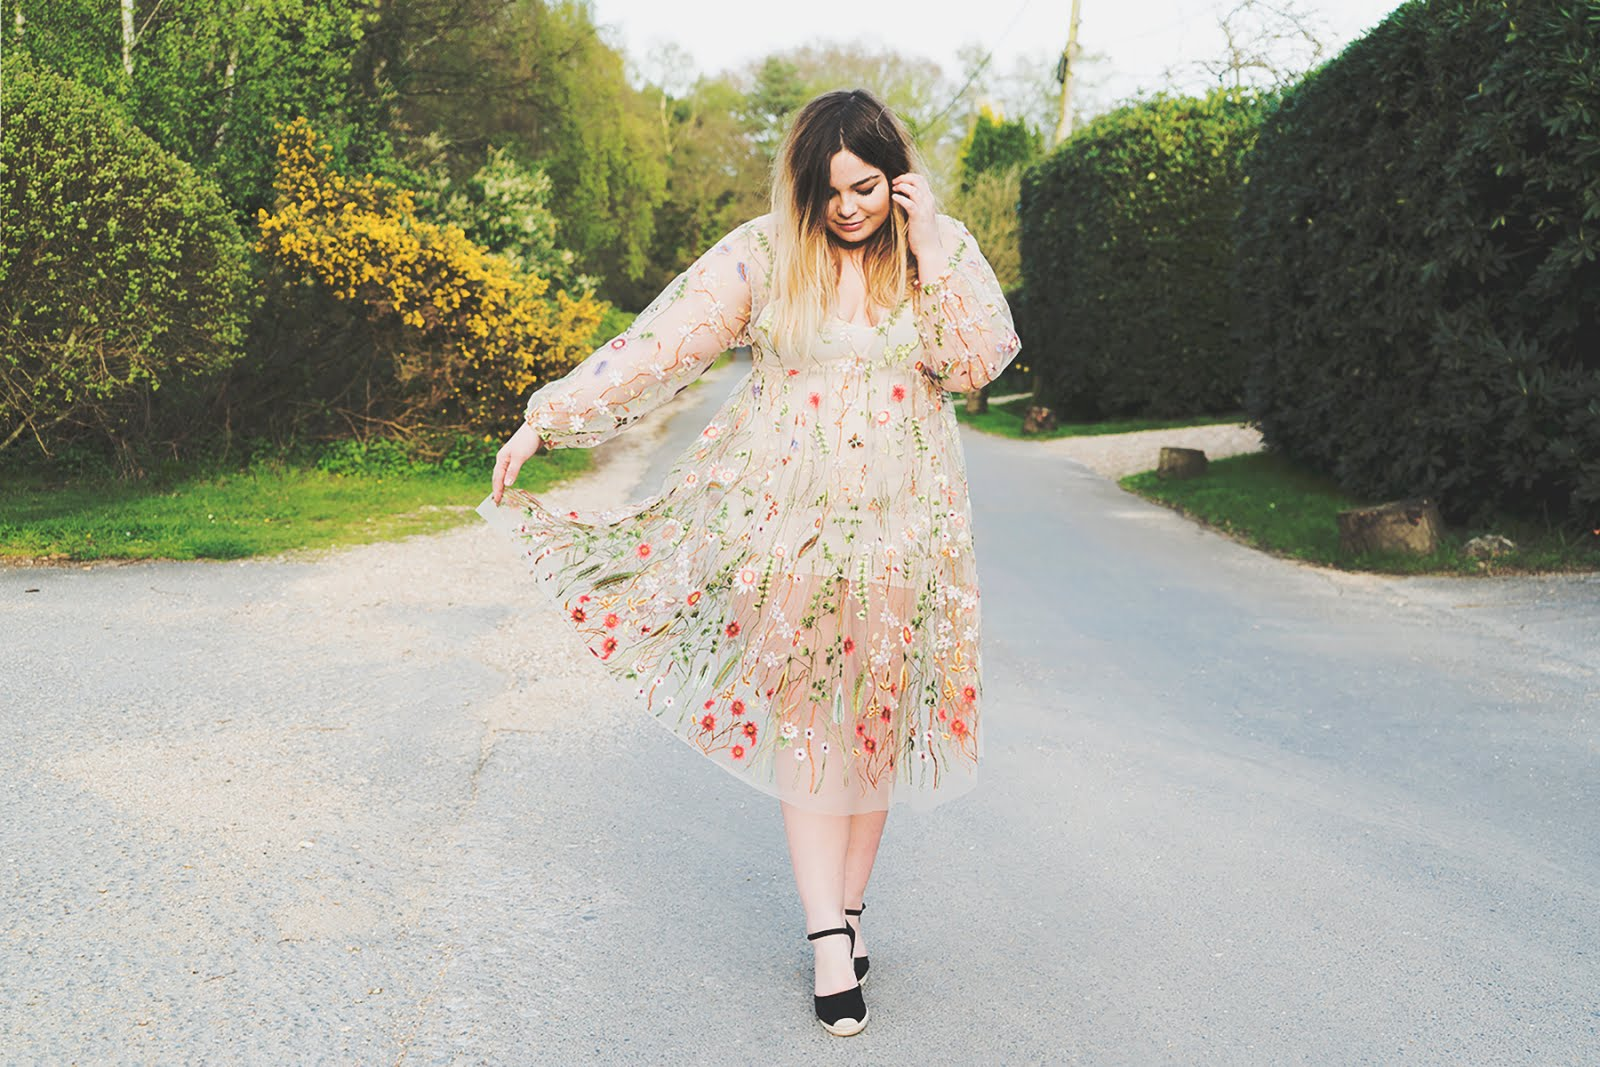 Lily Melrose - UK Style and Fashion Blog: Spring Road Trip with H&M